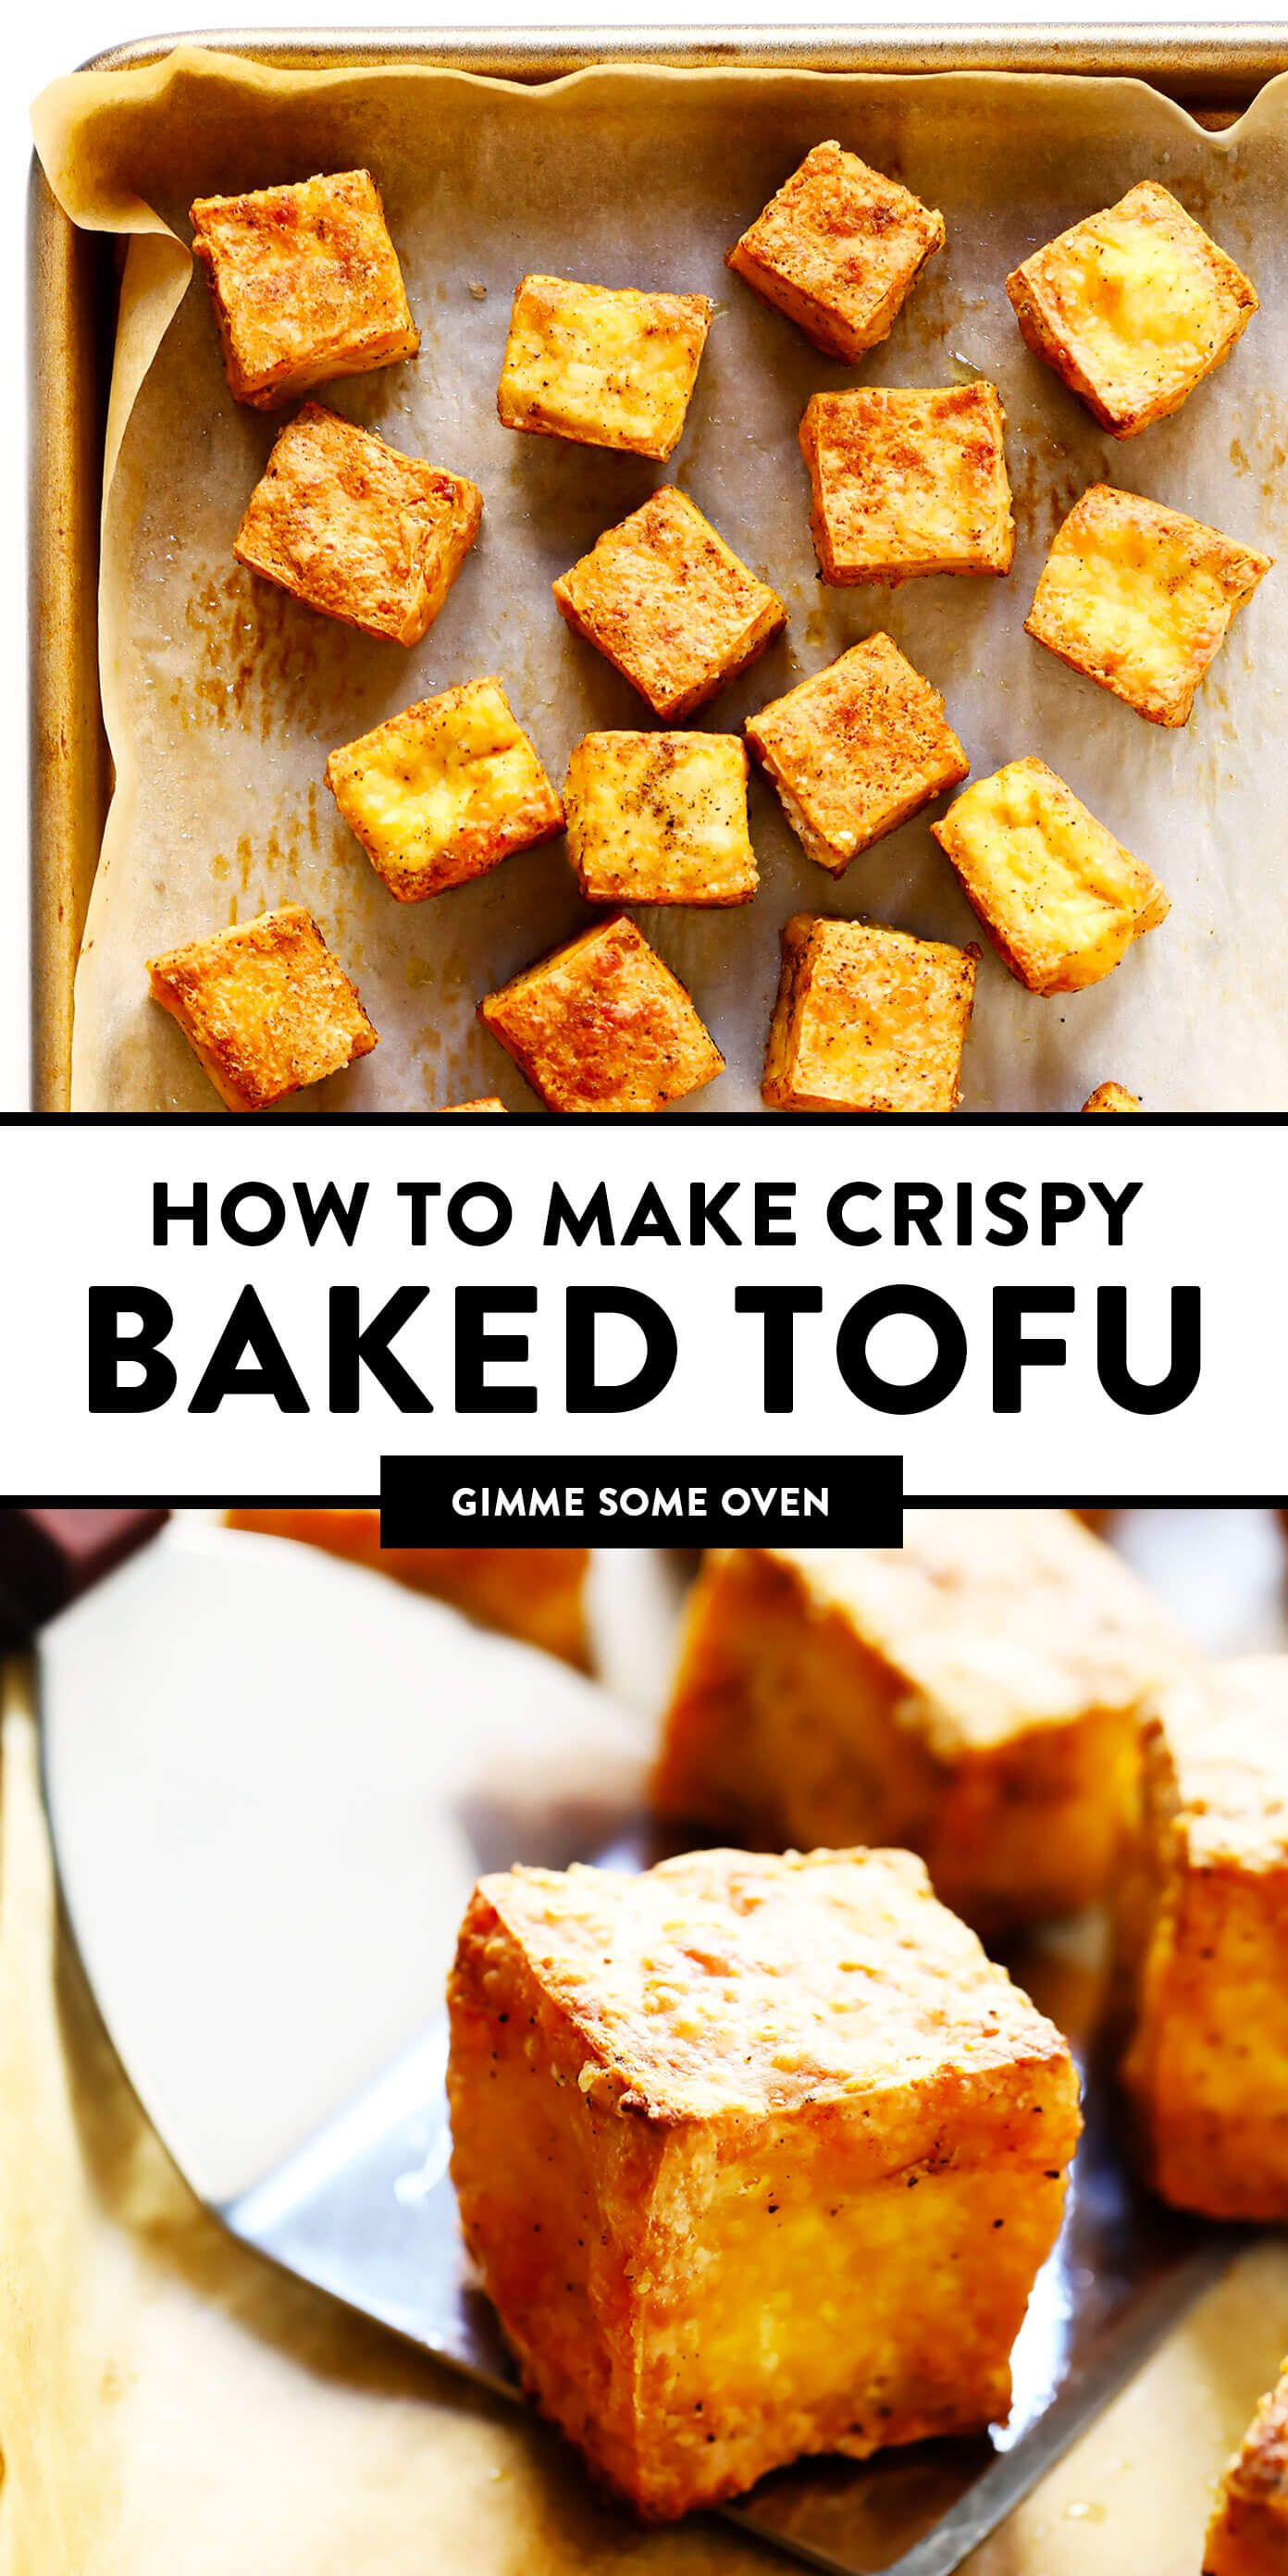 How To Make Baked Tofu | Gimme Some Oven